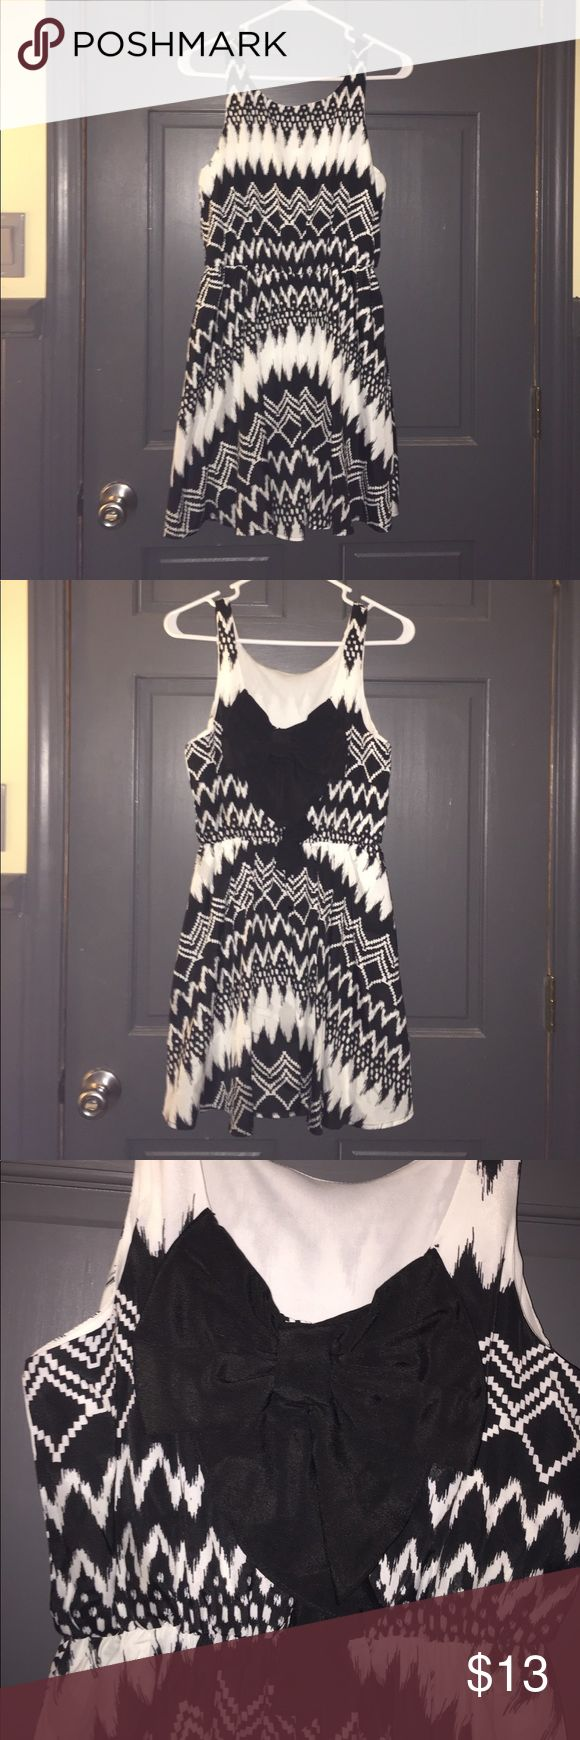 Super cute black and white aztec print dress! This black and white aztec print dress is super cute. Can be dressed up or down and is perfect for any occasion. It may seem simple on the front, but the back has a super cute black bow to make it not like any other black and white dress. Worn a few times and is in perfect condition! Rewind Dresses